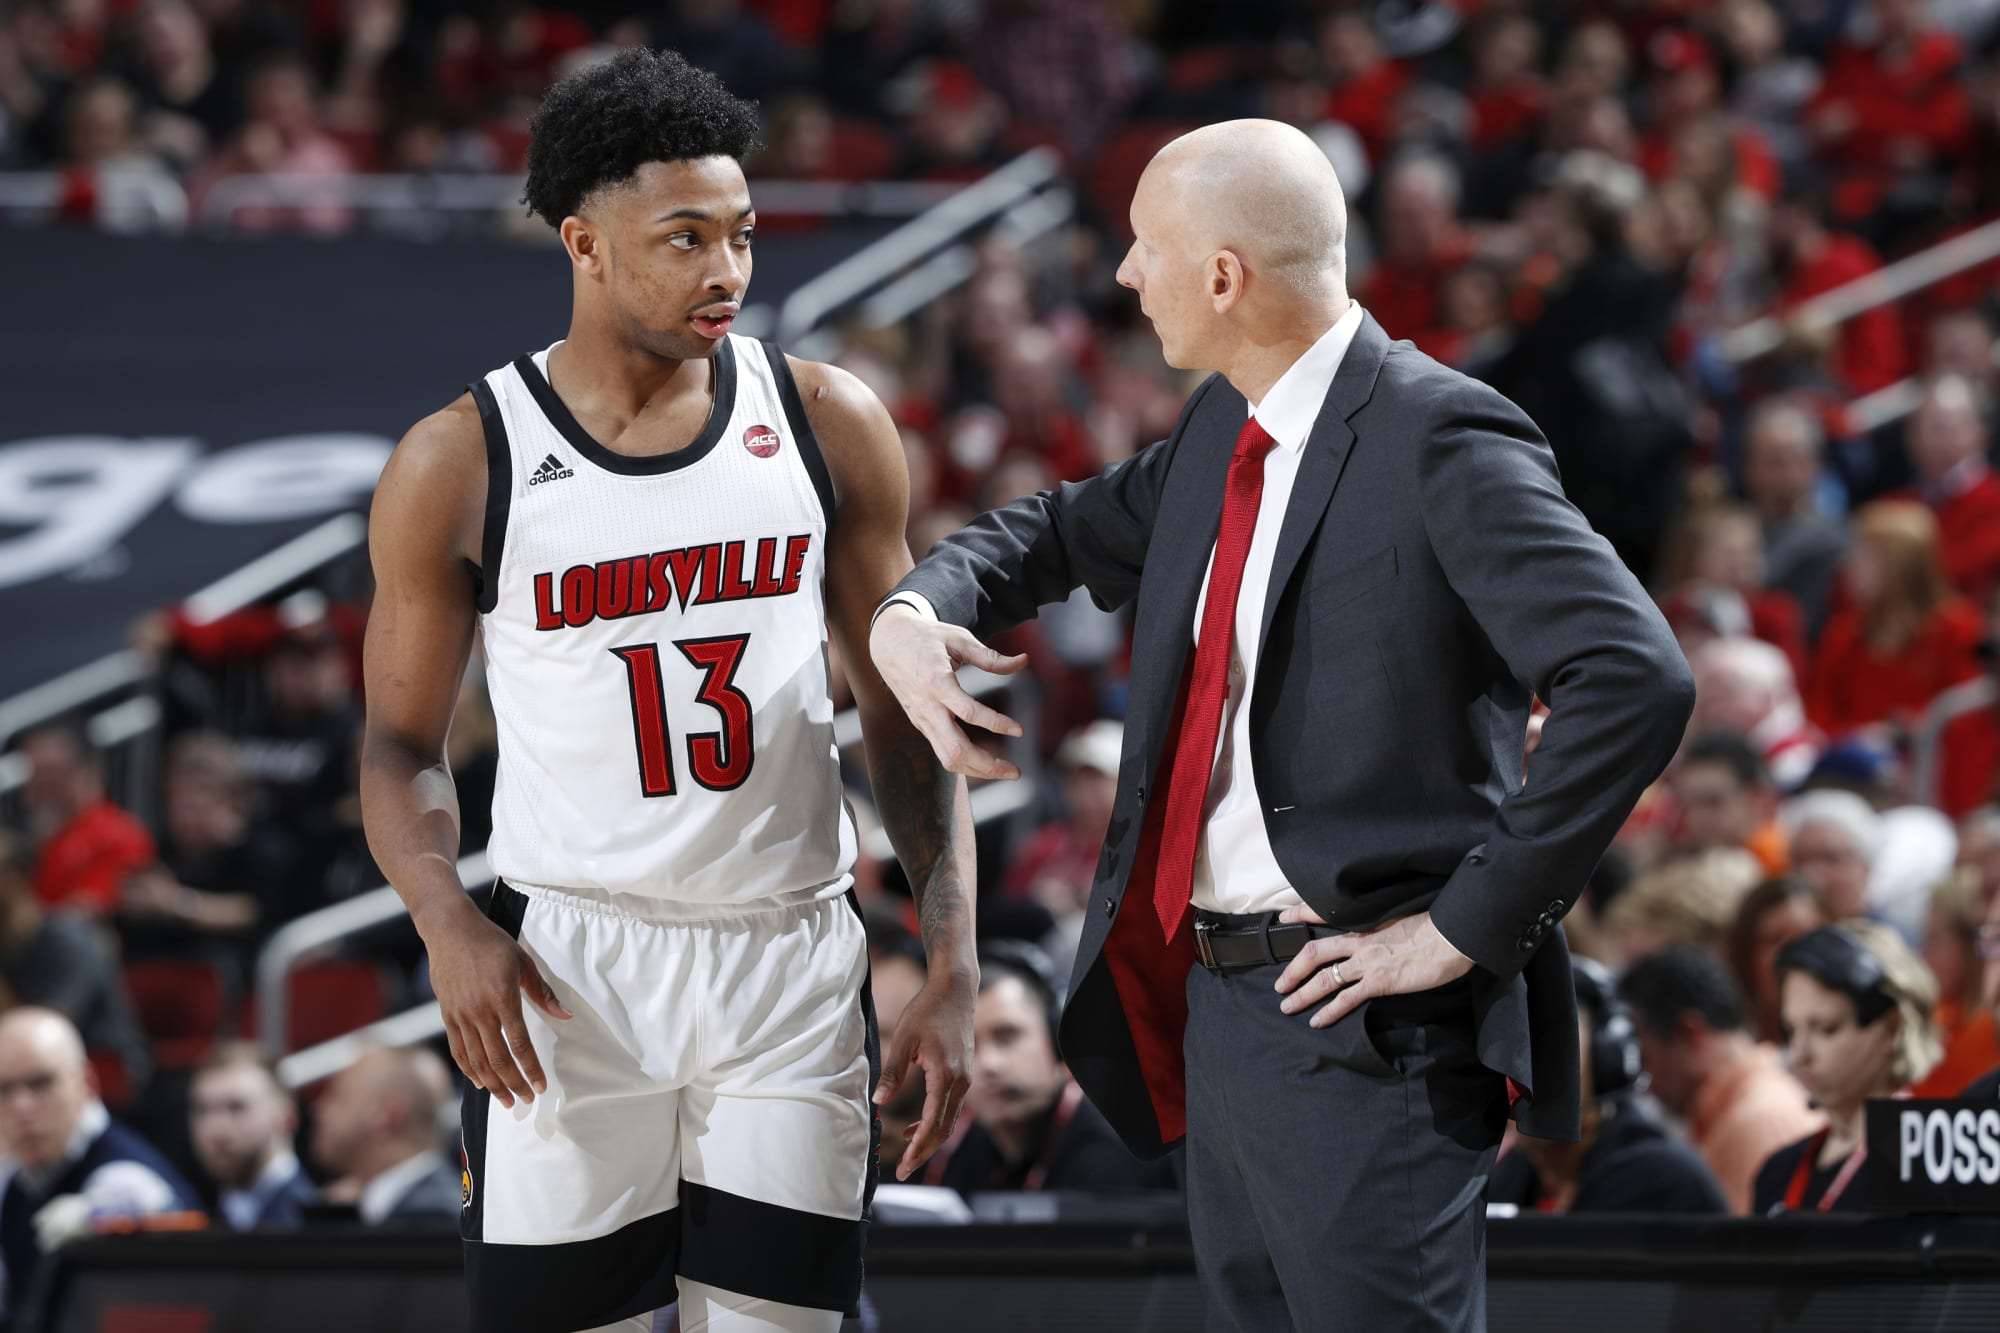 Louisville basketball putting together unique & challenging schedule